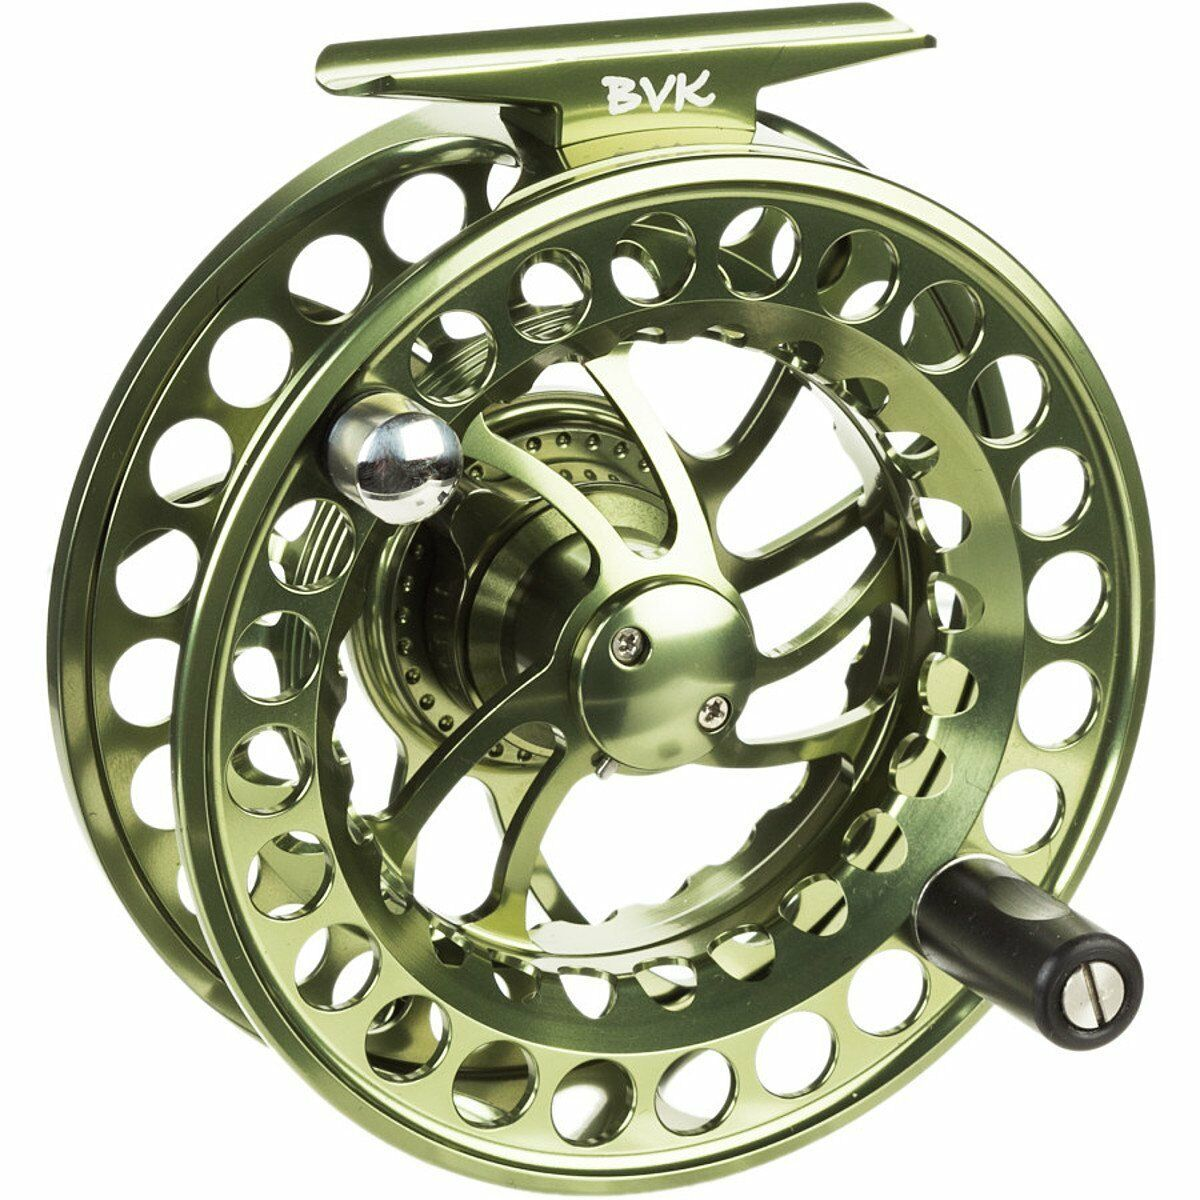 NEW TFO TEMPLE FORK OUTFITTERS BVK 3+ FLY FISHING REEL FOR 9 10 11 WEIGHT ROD